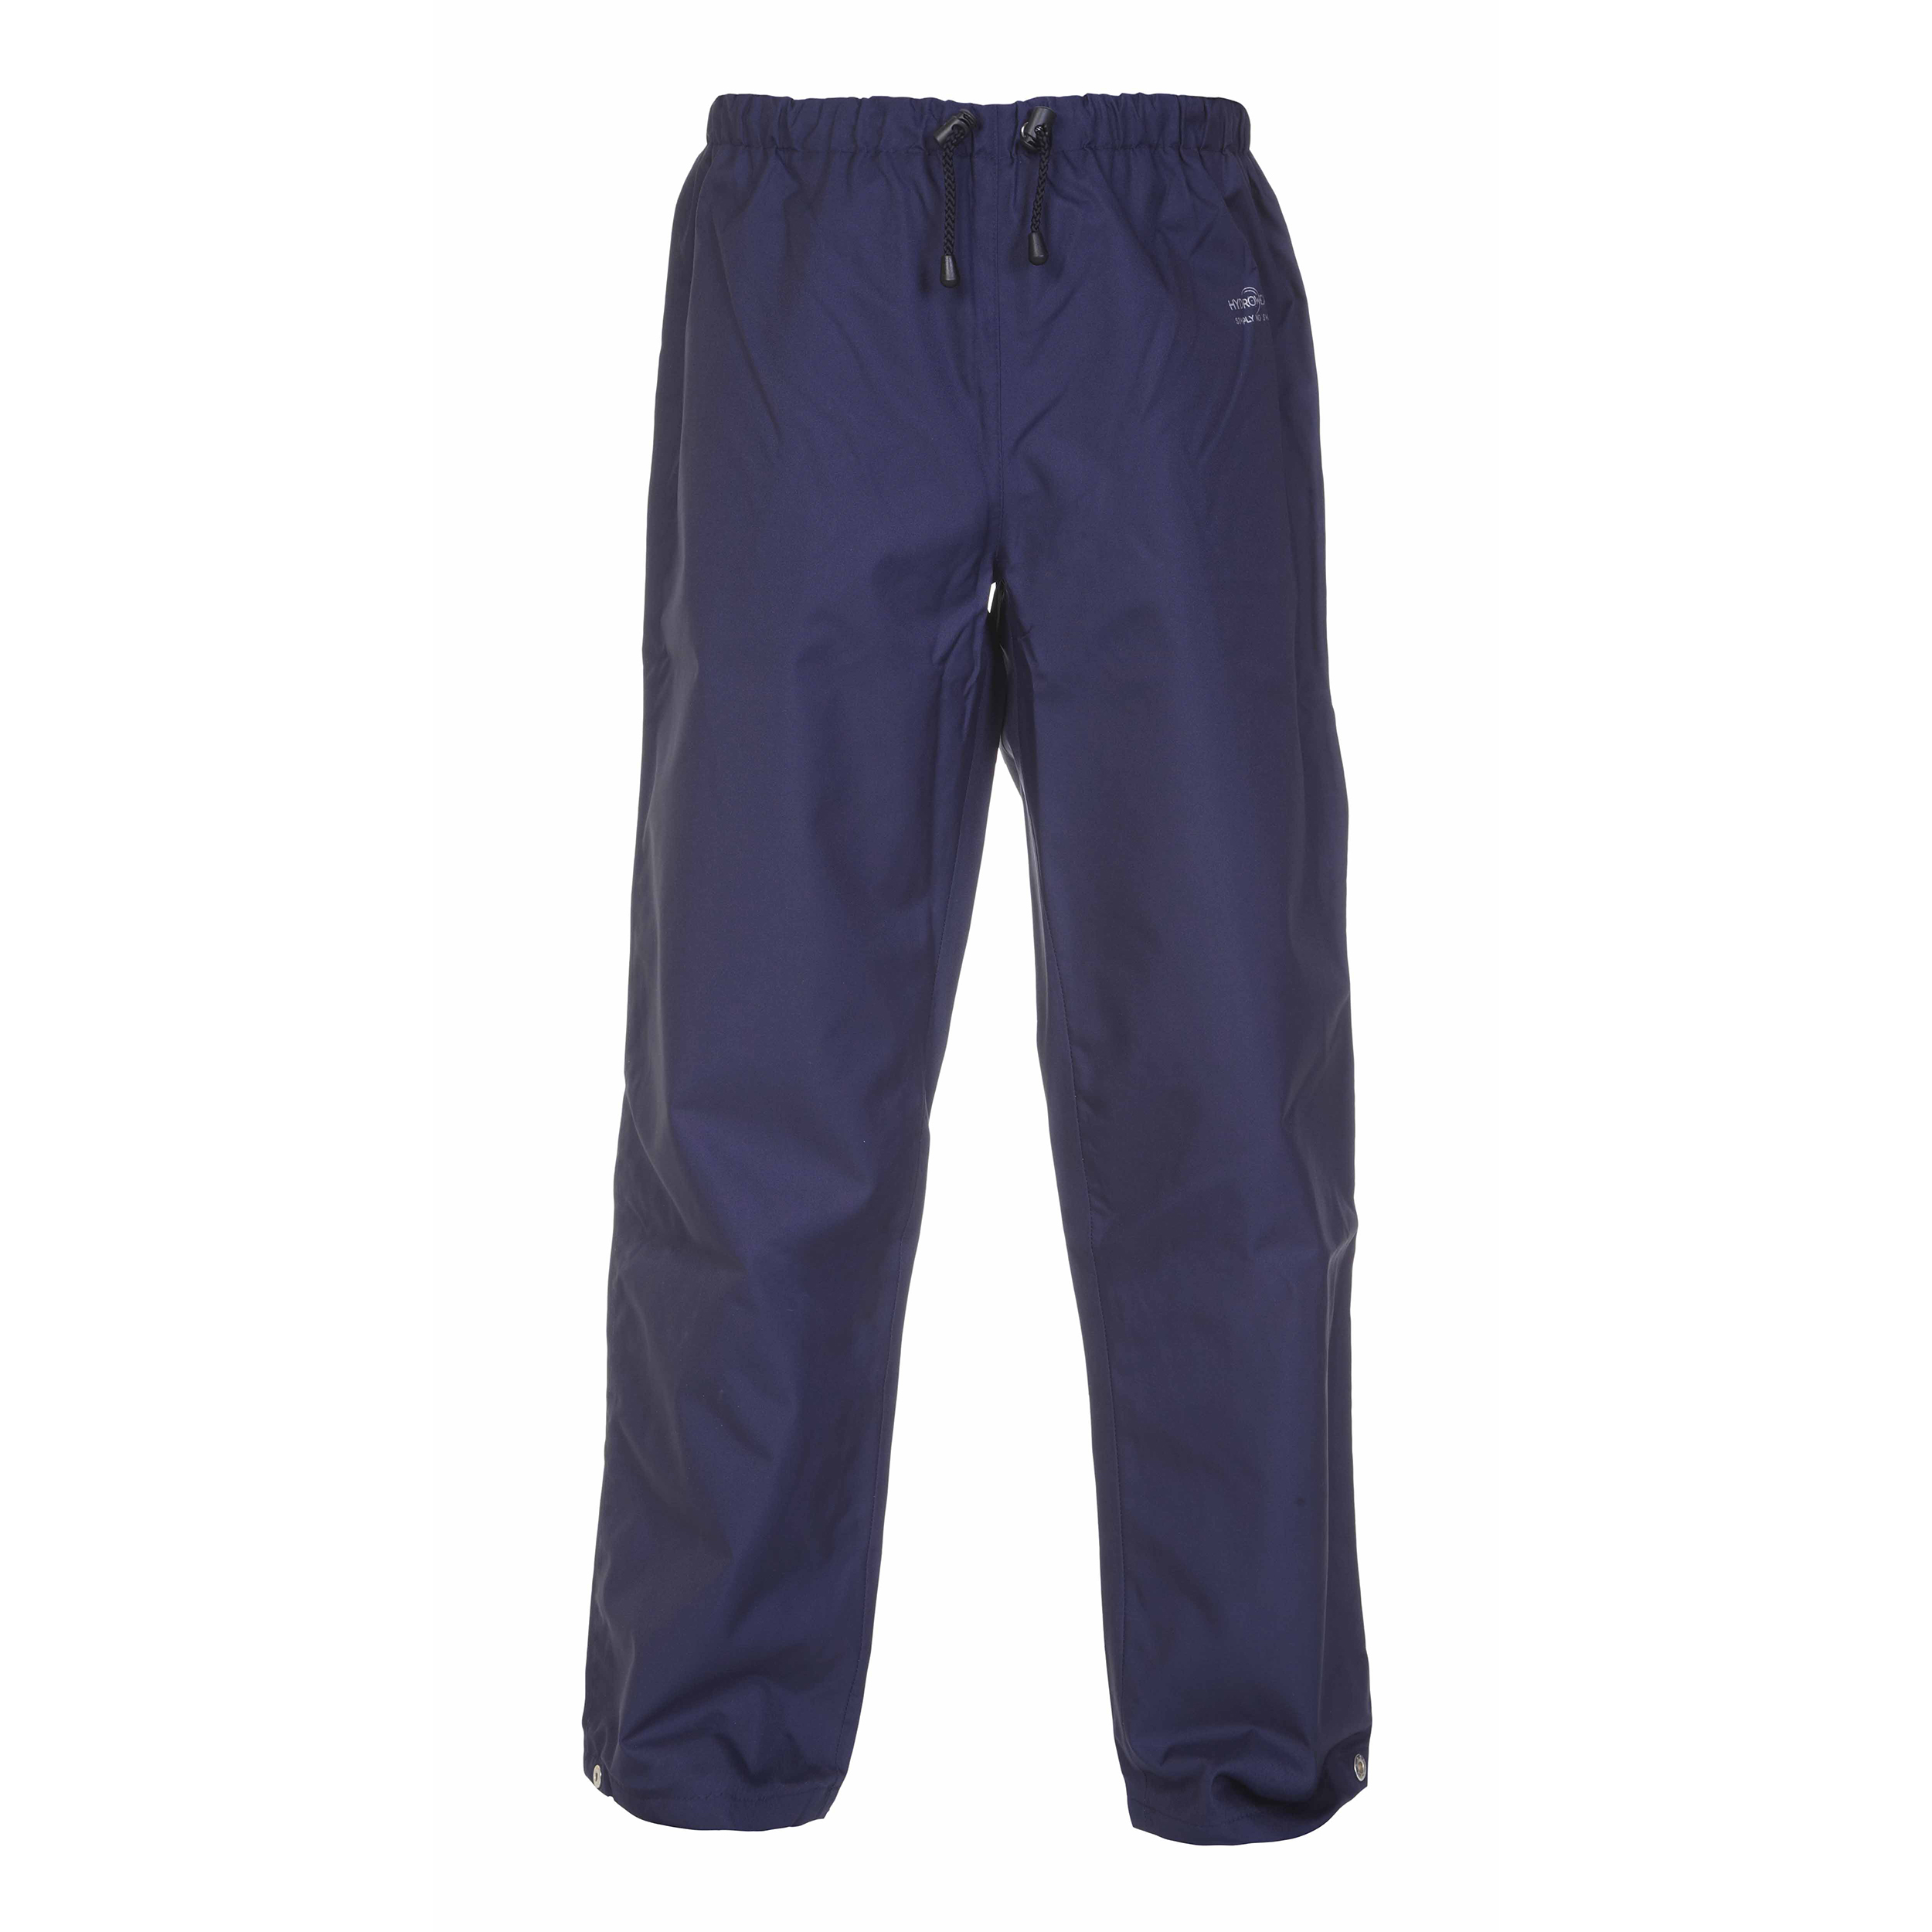 Limitless Hydowear Utrecht SNS Waterproof Trousers 3XL Navy Ref HYD072350N3XL *Up to 3 Day Leadtime*